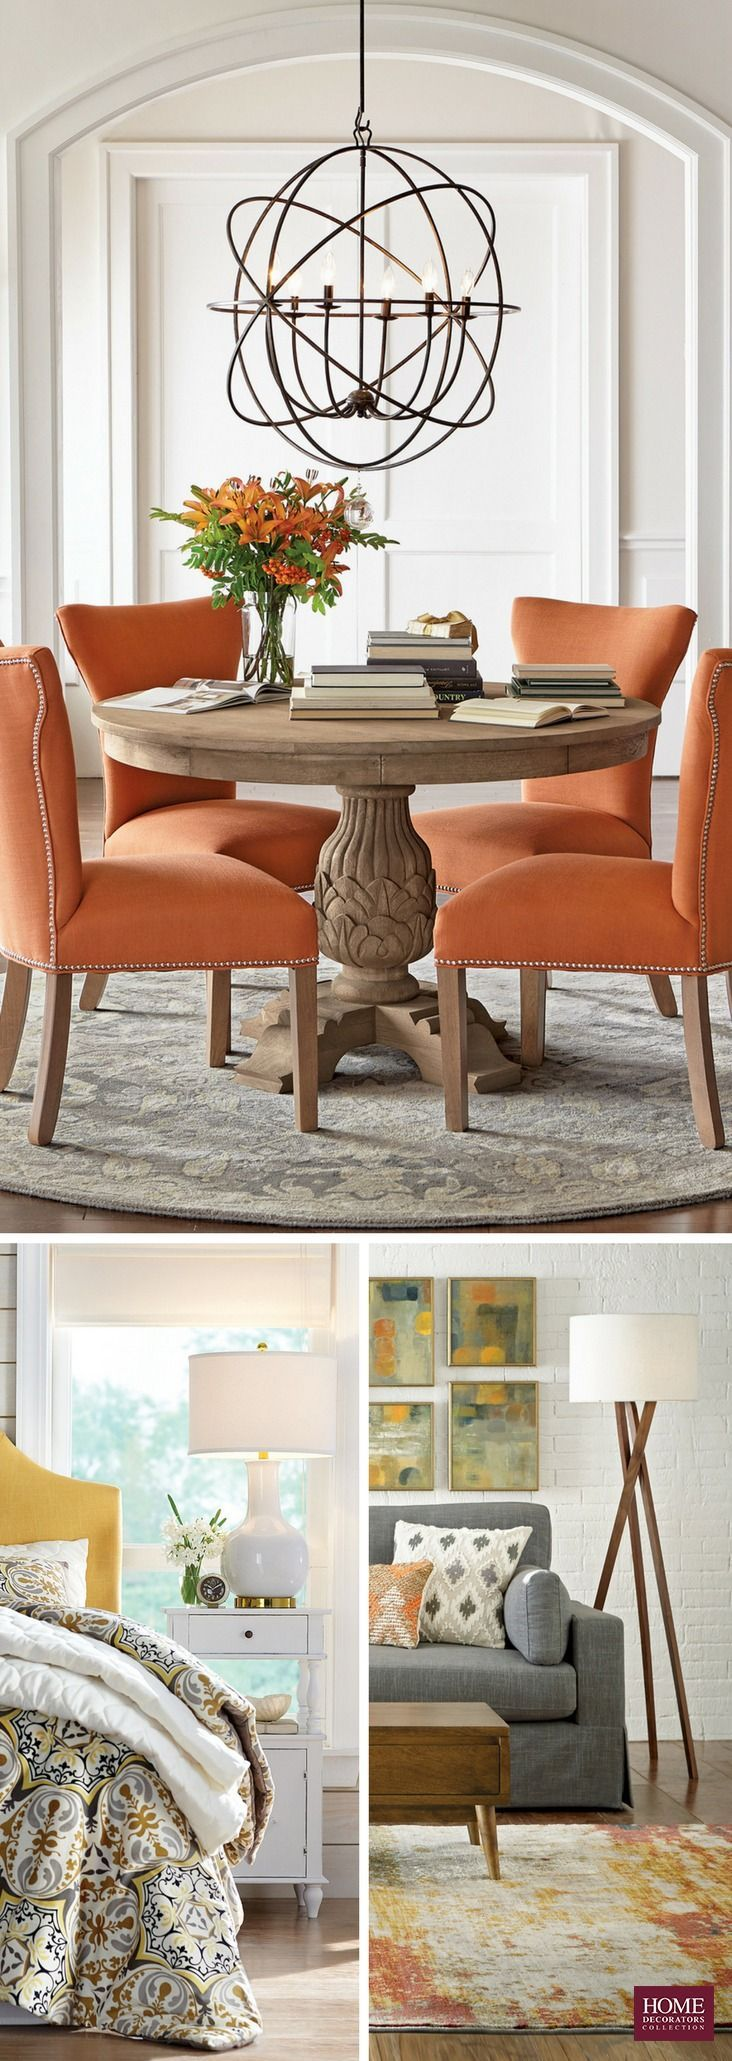 Light up a room with a new lighting fixture. From pendants to lamps, we have hundreds of styles you'll love. With the simple switch of a light, you can change the look of the entire room. Find large pendants for the dining room or smaller ones for the entryway or bathroom. Choose a floor lamp that complements existing decor or a table lamp that brightens the space. Available at HomeDecorators.com.